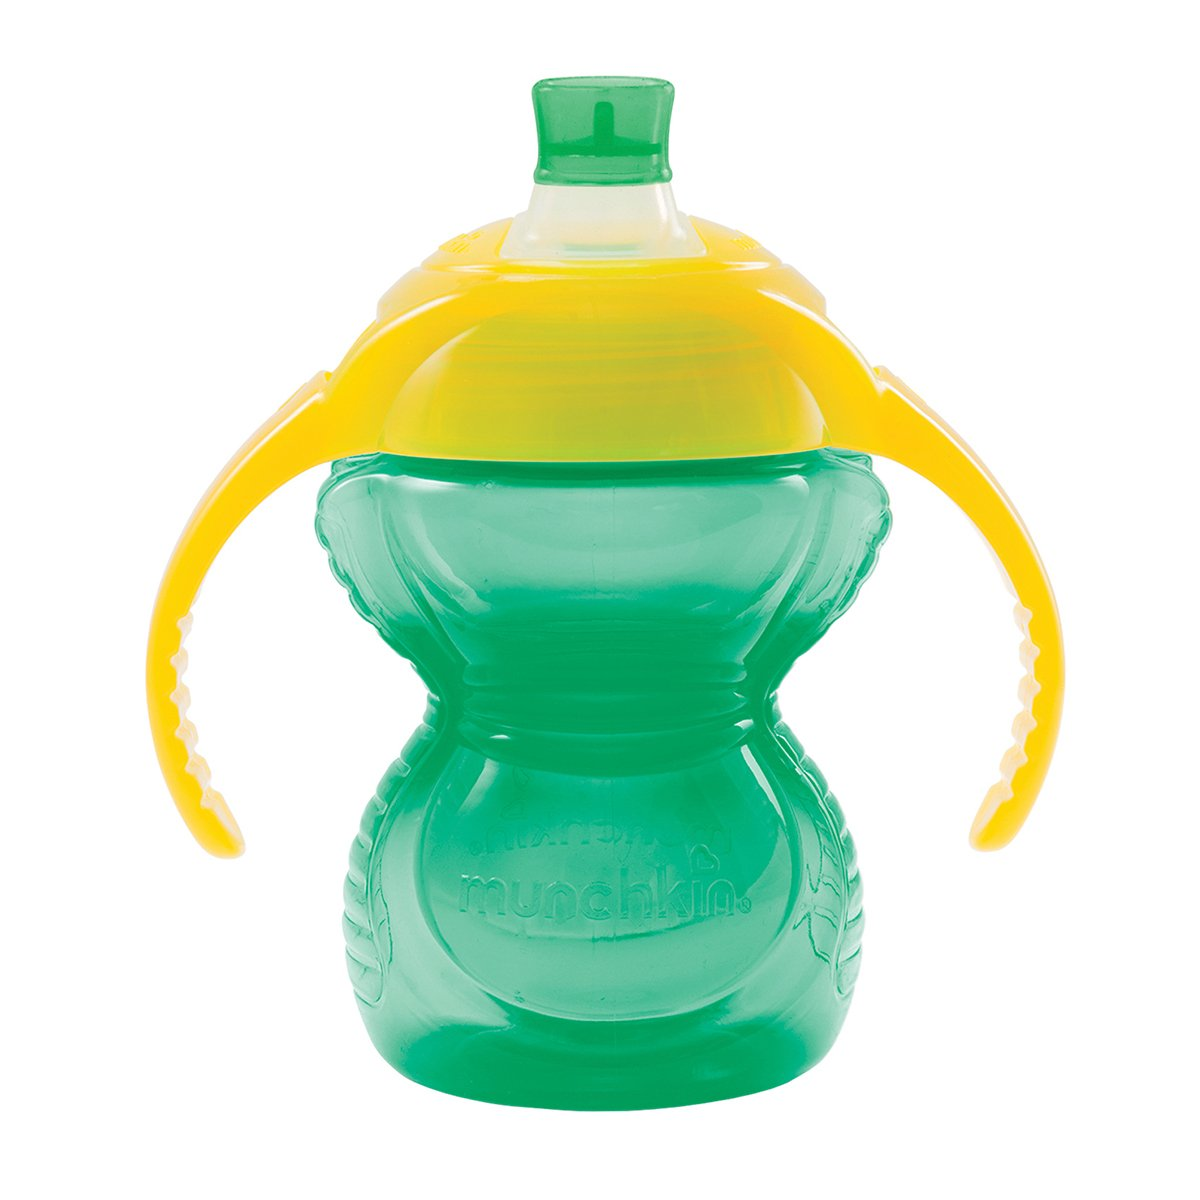 Munchkin Click to Lock Trainer Cup with Chew Proof Spout, 8 oz/237 ml  (Color Assorted): Amazon.co.uk: Baby